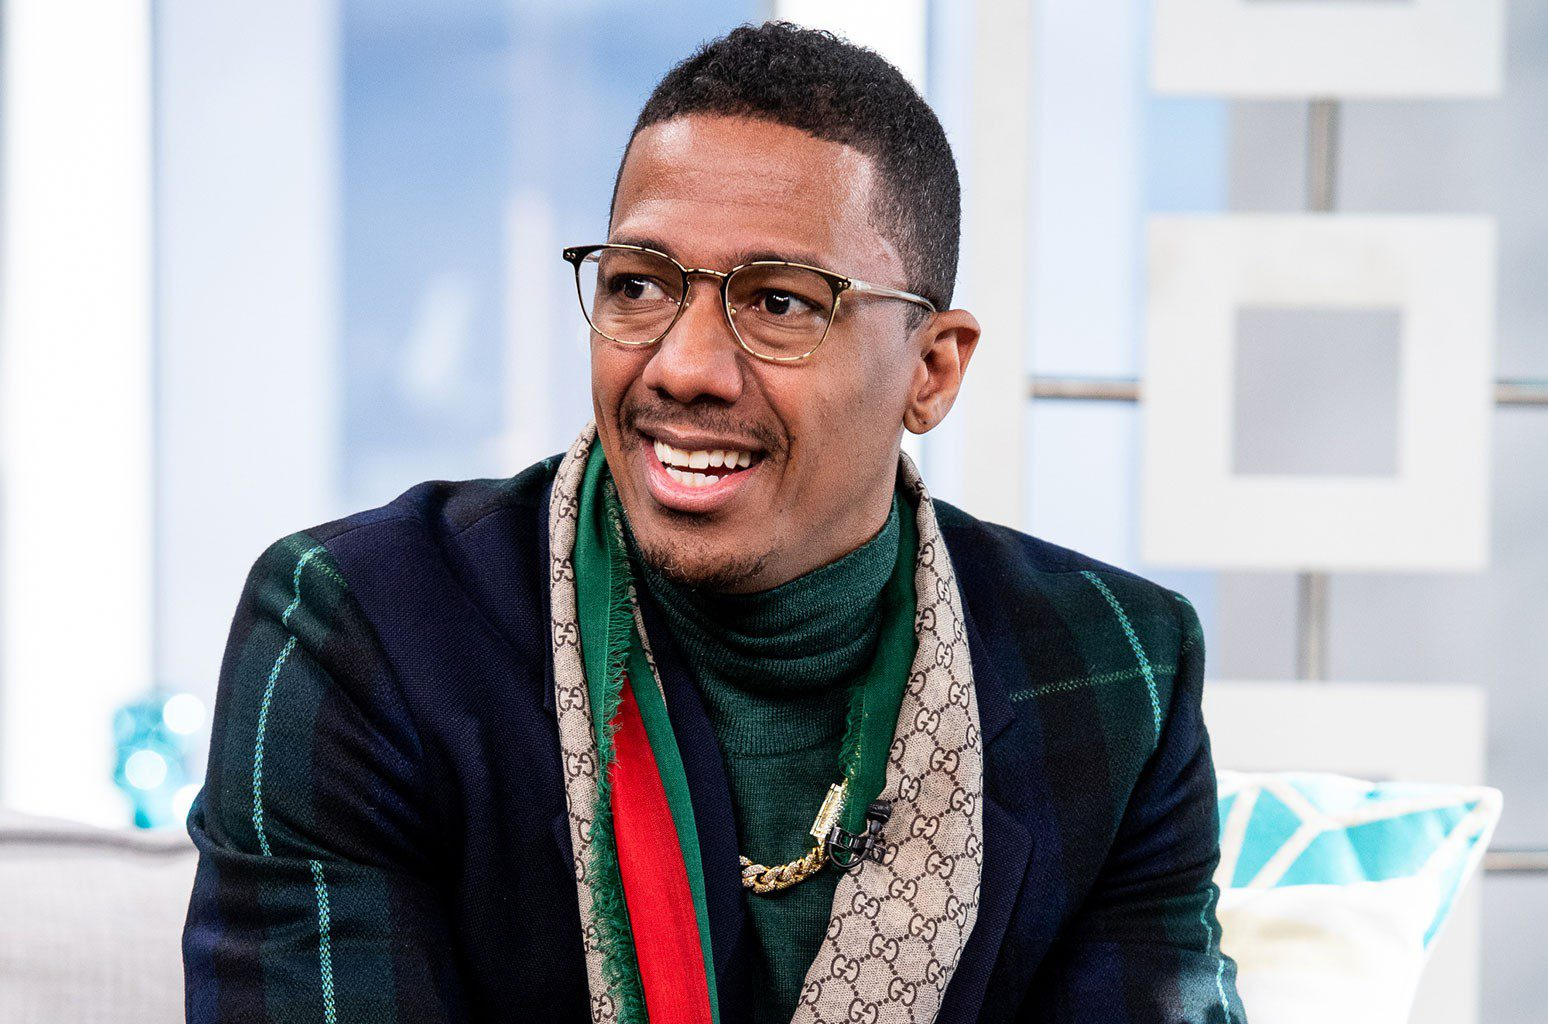 Nick Cannon Gets To Host Wild N Out Again